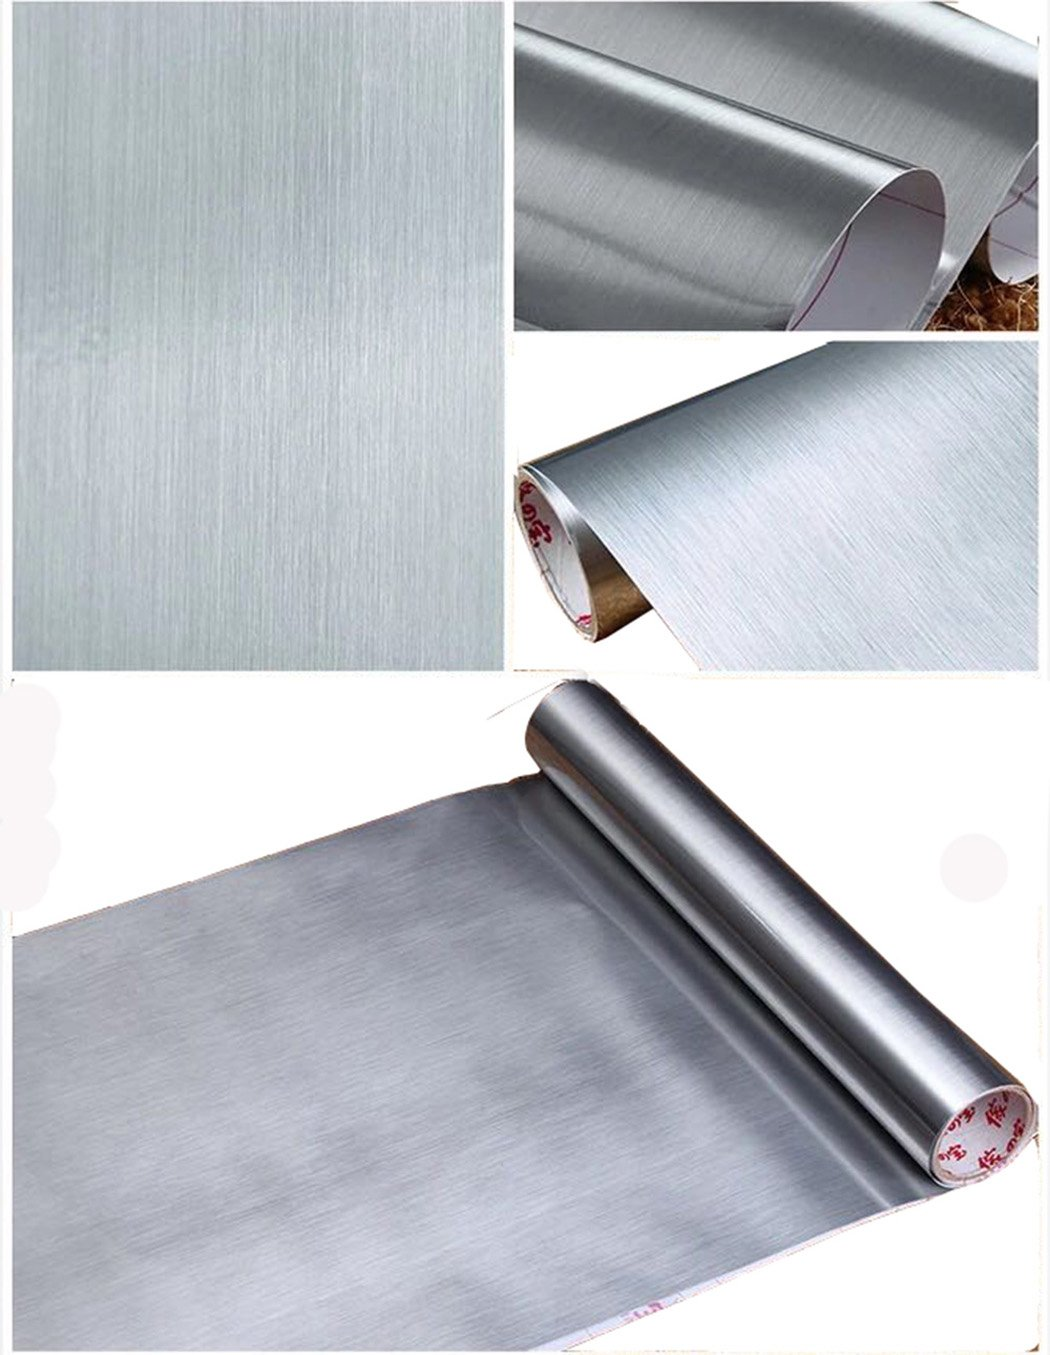 Peel and Stick Brushed Stainless Steel Contact Paper Self Adhesive Vinyl Film Shelf Liner for Covering Backsplash Oven Dishwasher Pantry Appliances (24 x 117'', Silver)